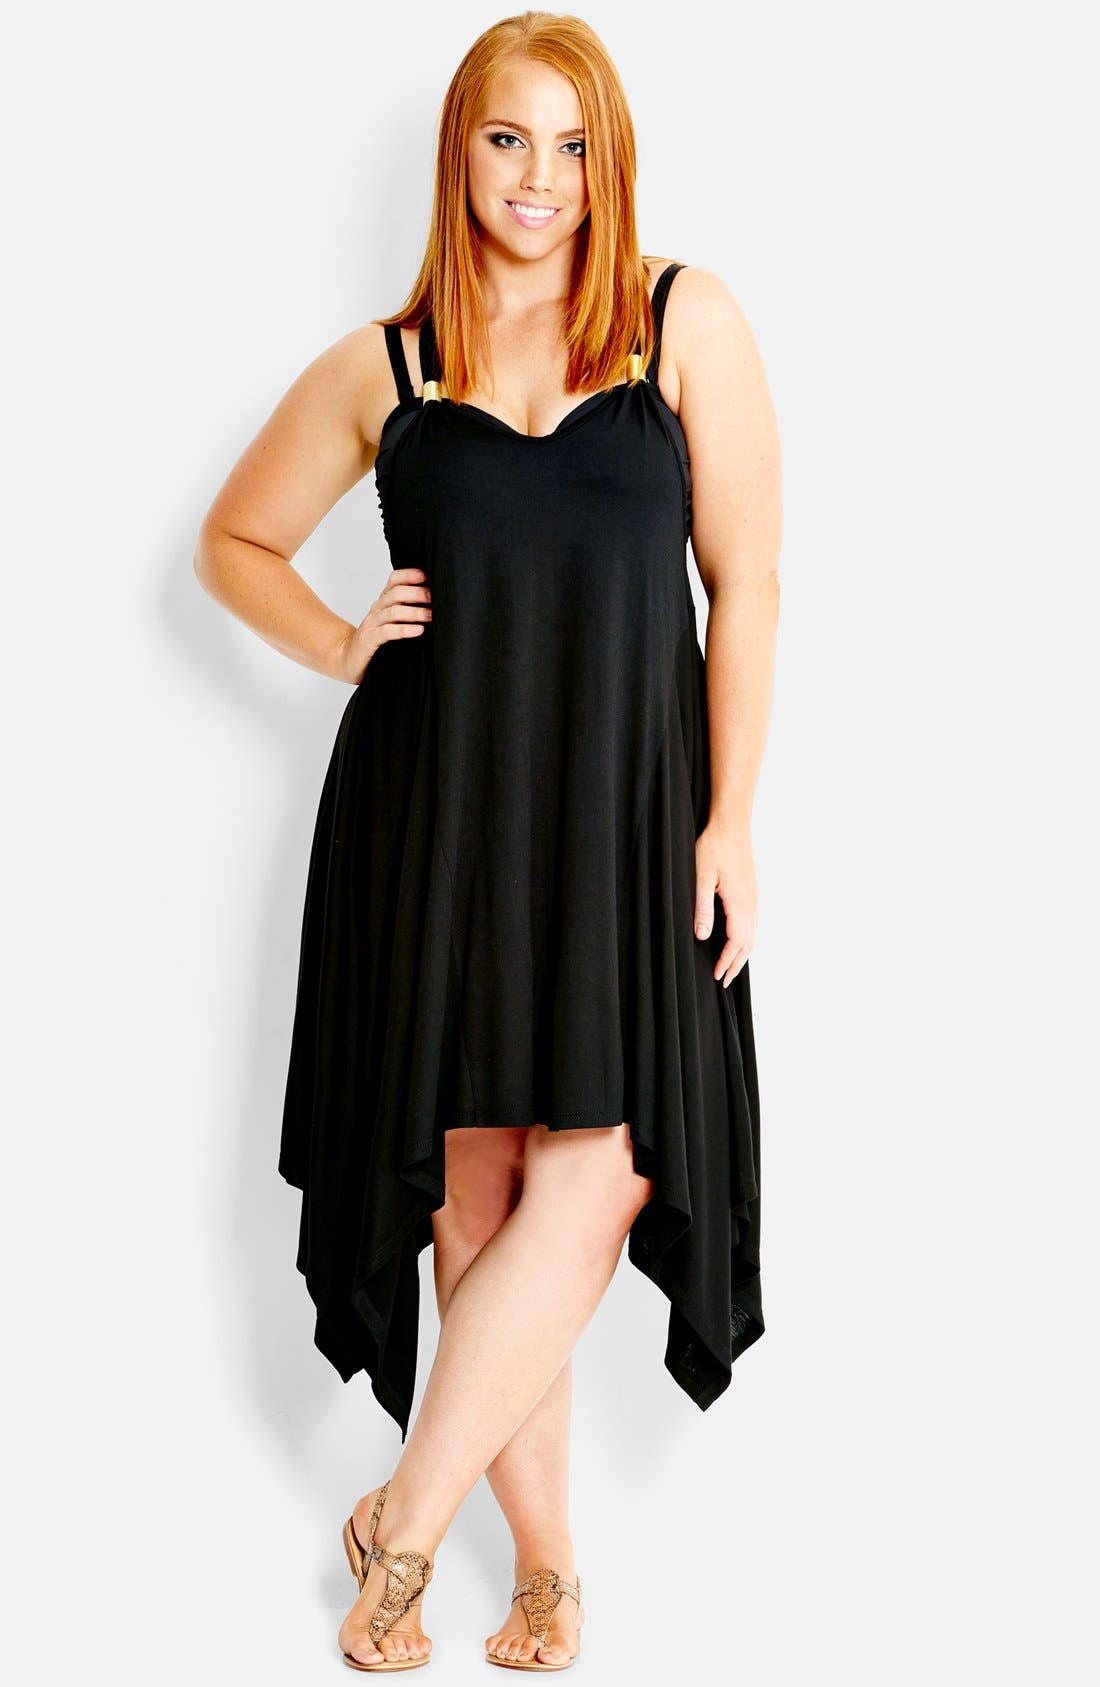 Alternate Image 1 Selected - City Chic 'Monaco' High/Low Stretch Knit Cover-Up Dress (Plus Size)